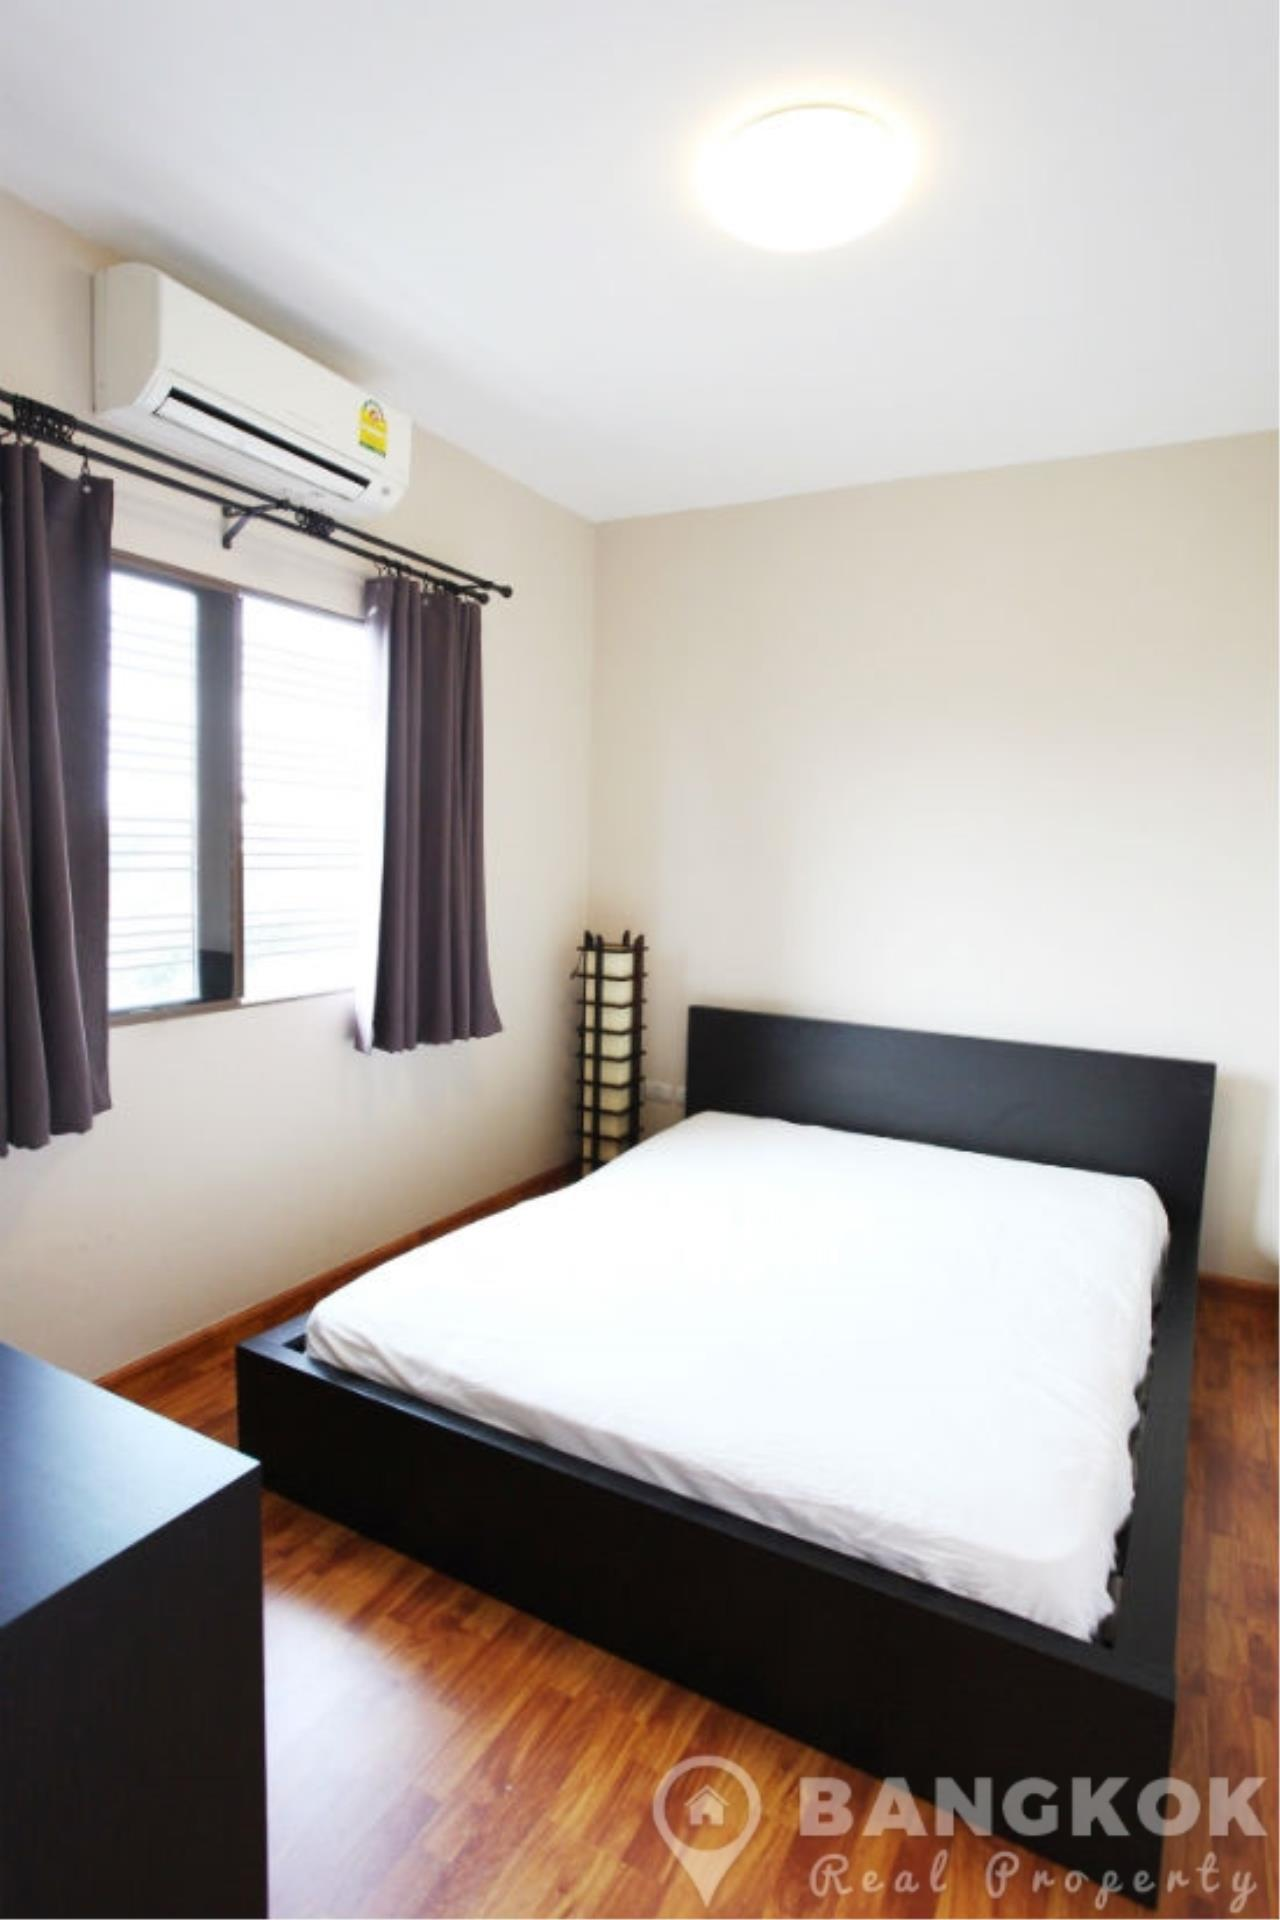 Bangkok Real Property Agency's Spacious 1st Rental 3 Bed 4 Bath Bangchak Townhouse near BTS 9